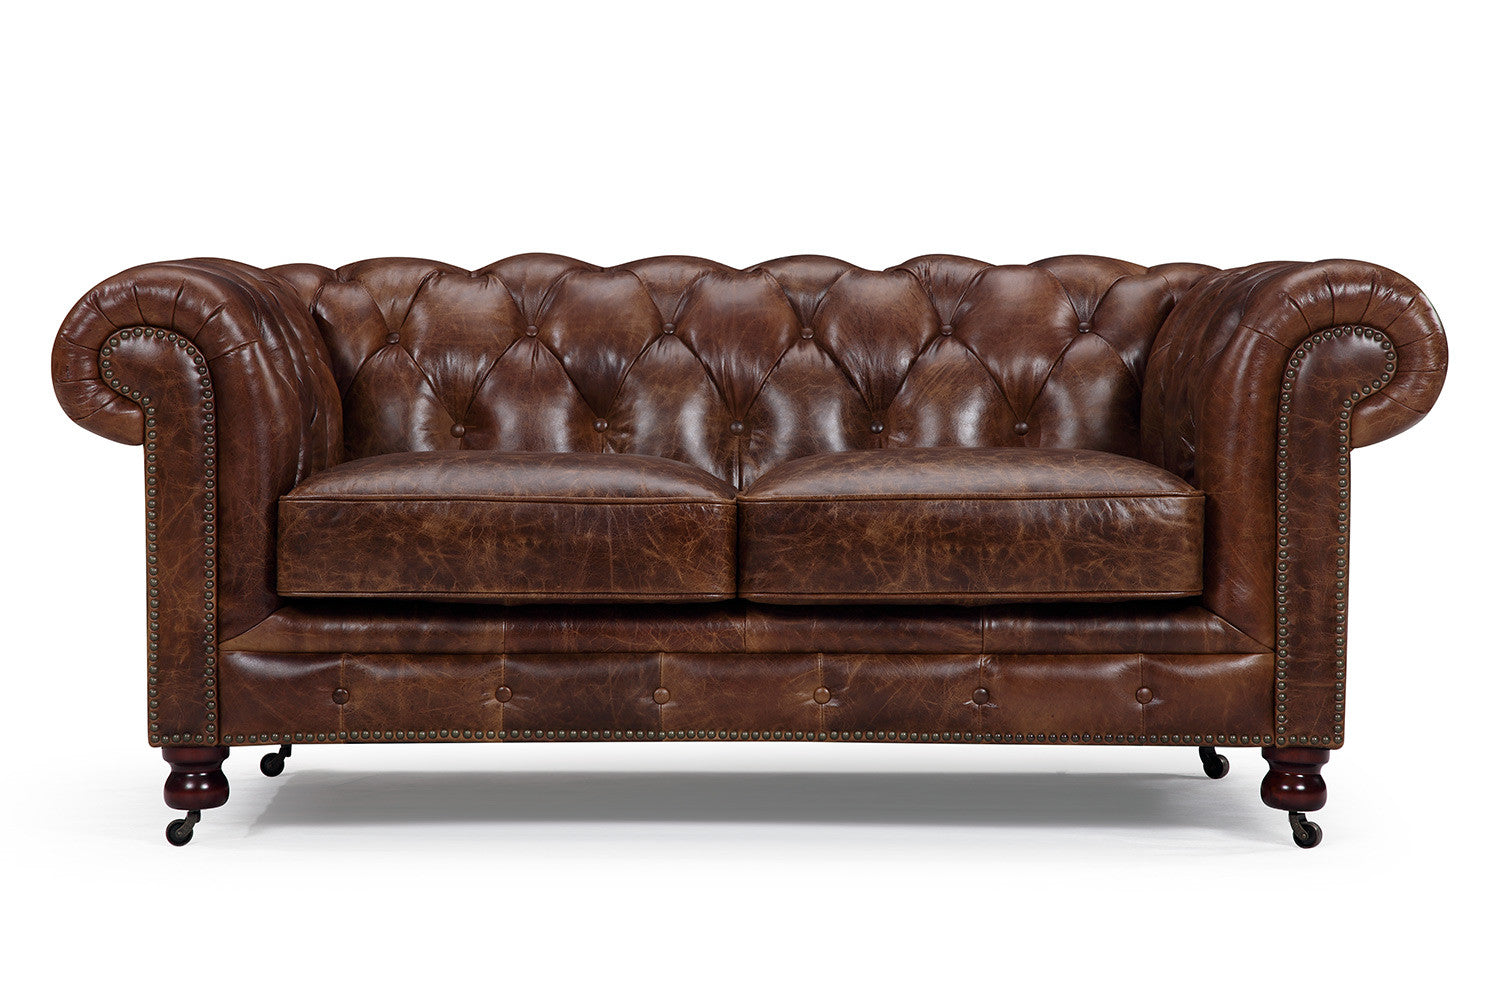 Canap chesterfield en cuir kensington 2 places rose moore for Chesterfield canape